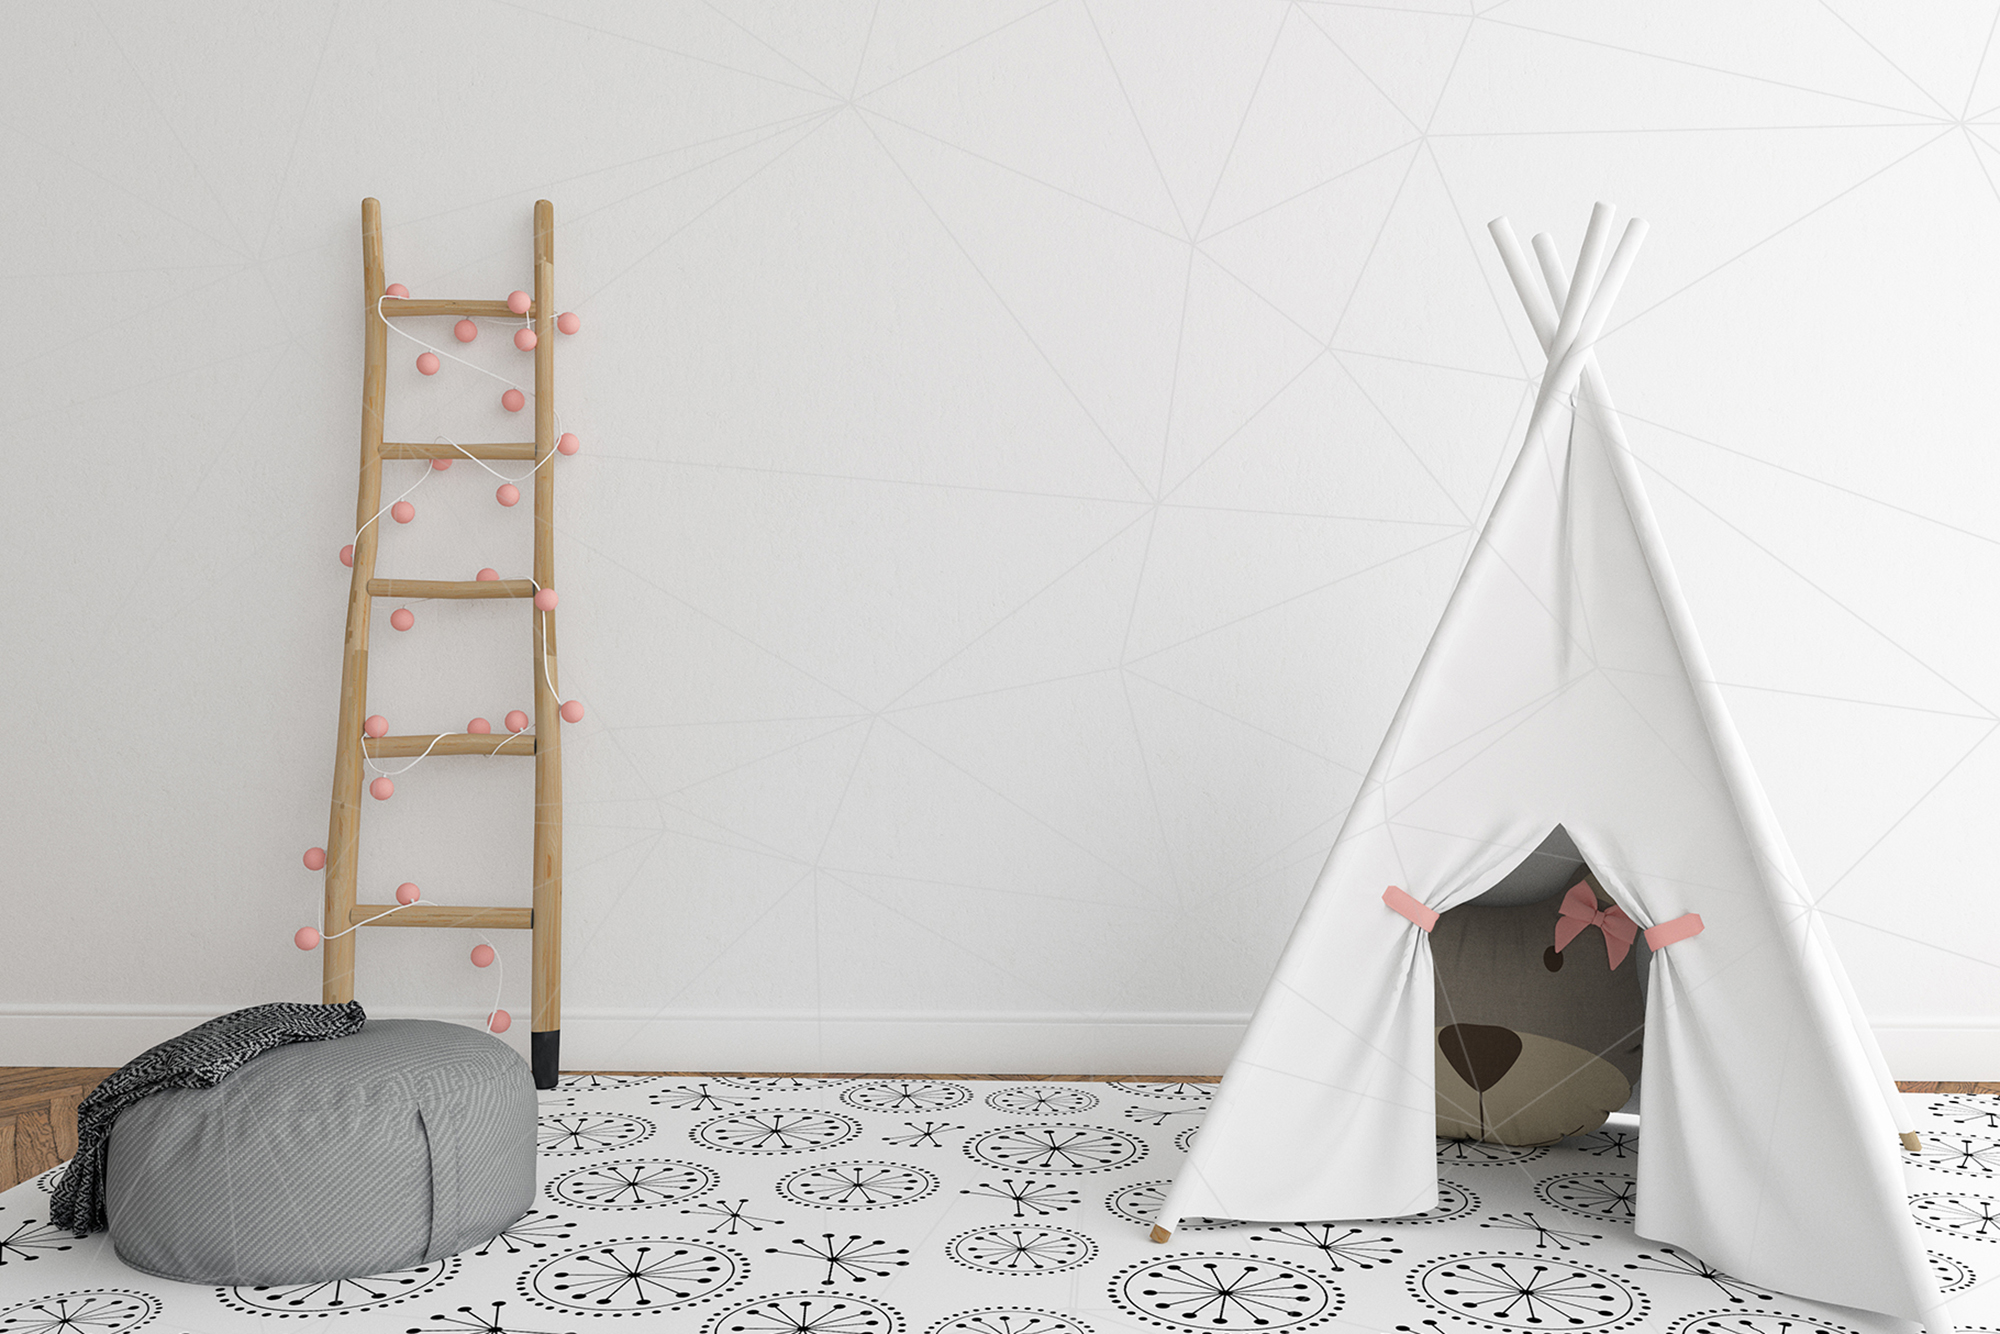 Nursery interior bundle - 10 images 60 off example image 10